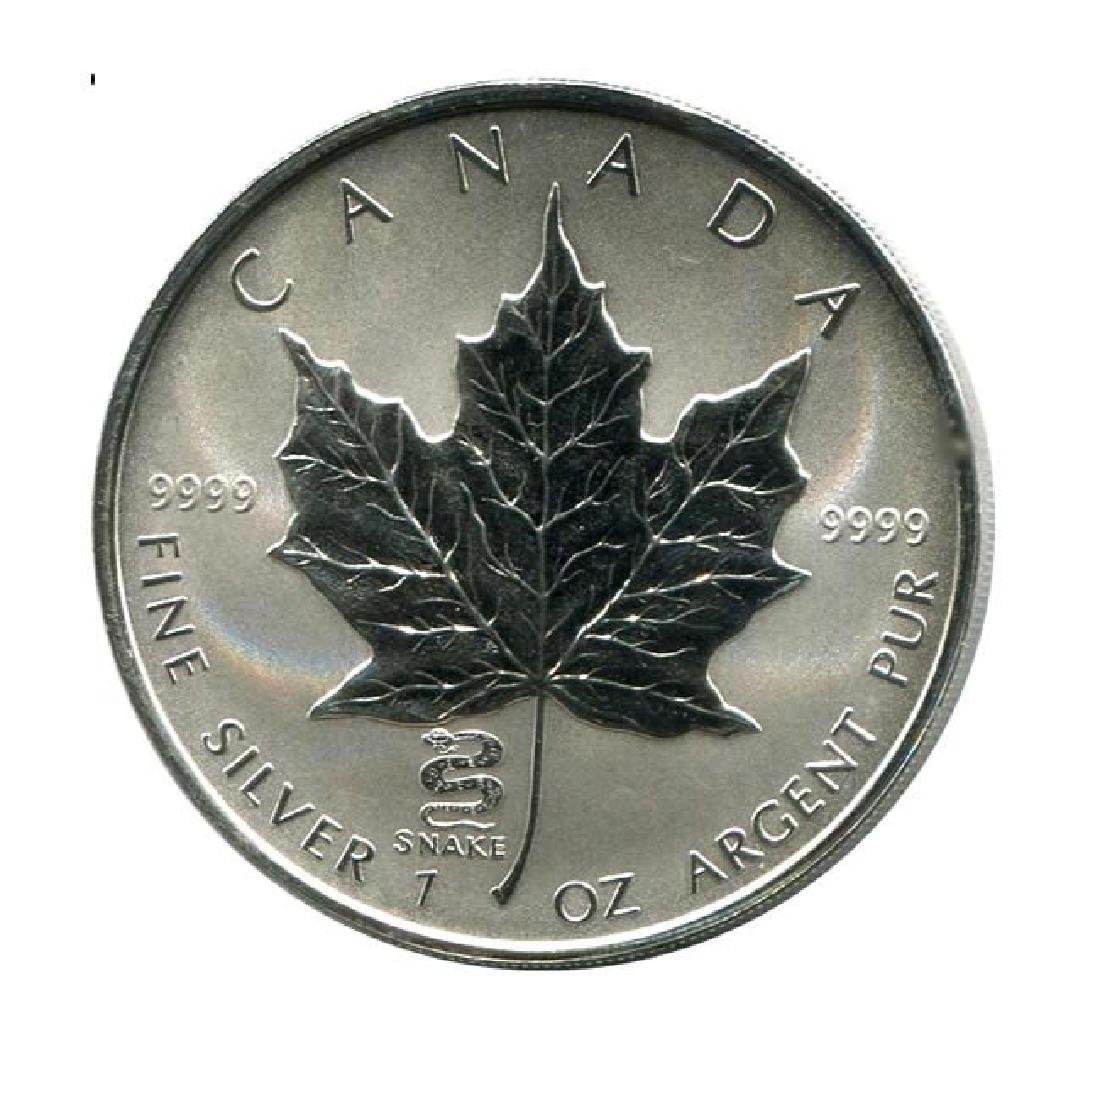 2001 Canada 1 oz. Silver Maple Leaf Reverse Proof Snake